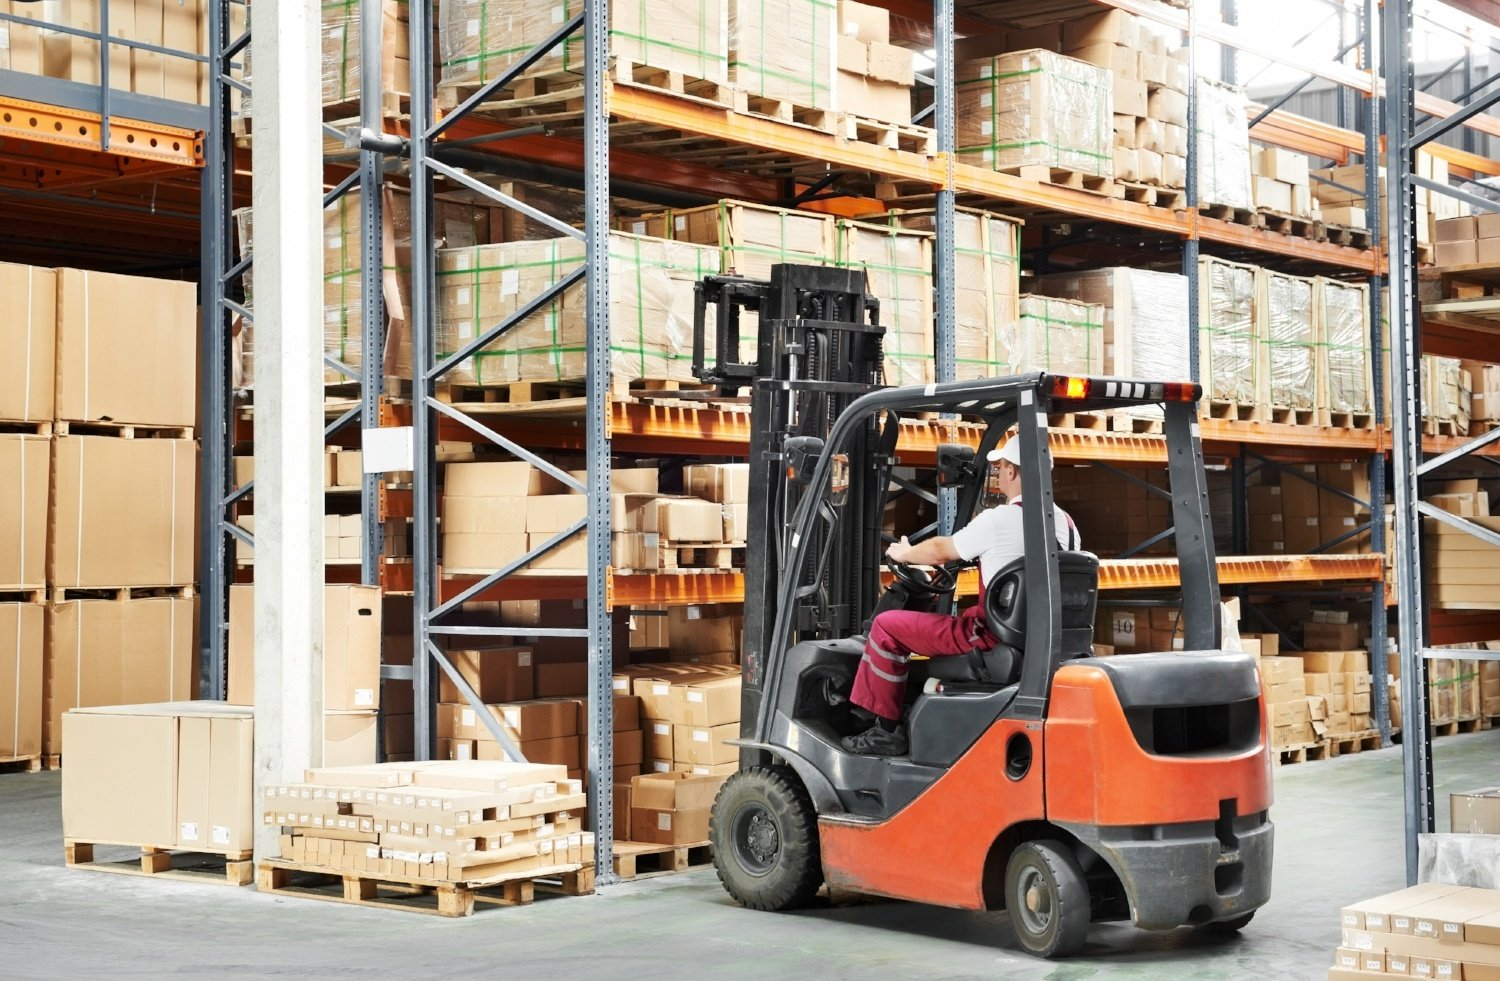 The Top Forklift Manufacturers You Should Be Using